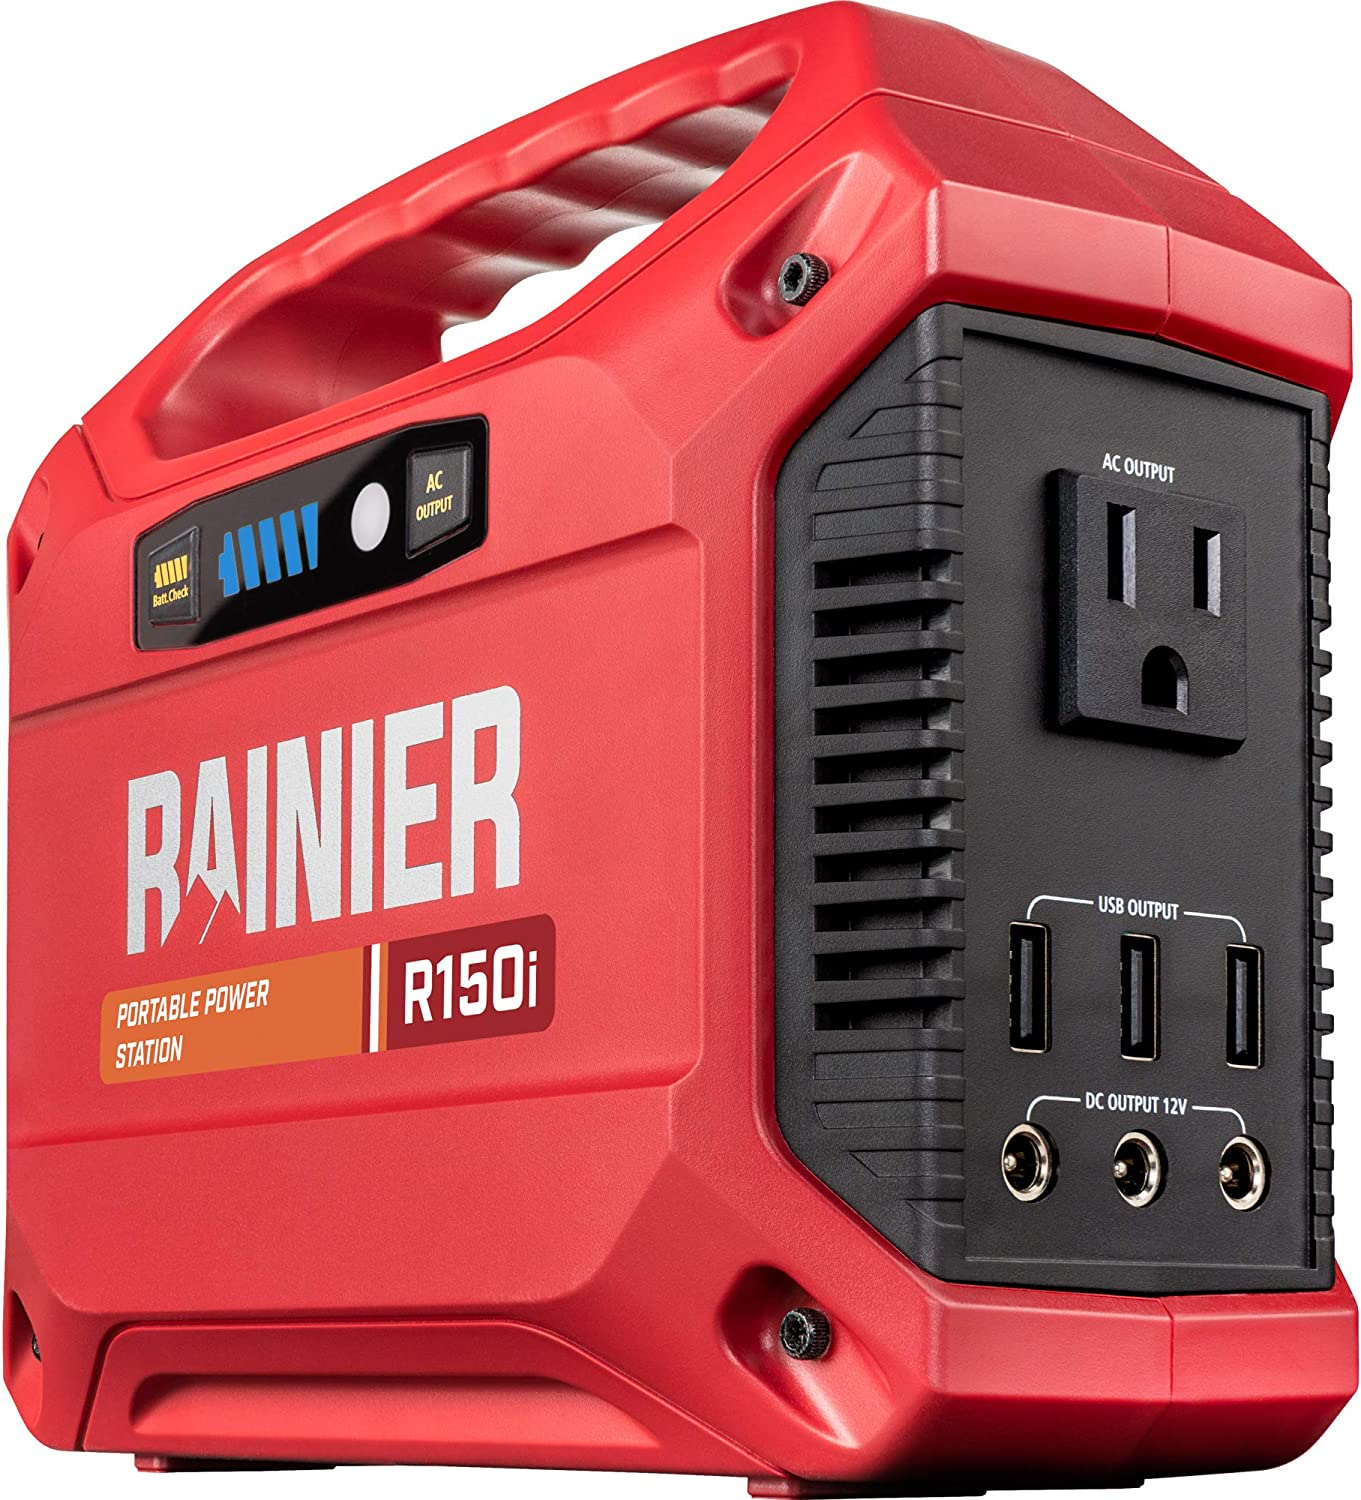 Rainier Outdoor Power Equipment R150i Portable Power Station 155 Wh Backup Lithium Battery, 110V/100W AC Outlet, Solar Generator